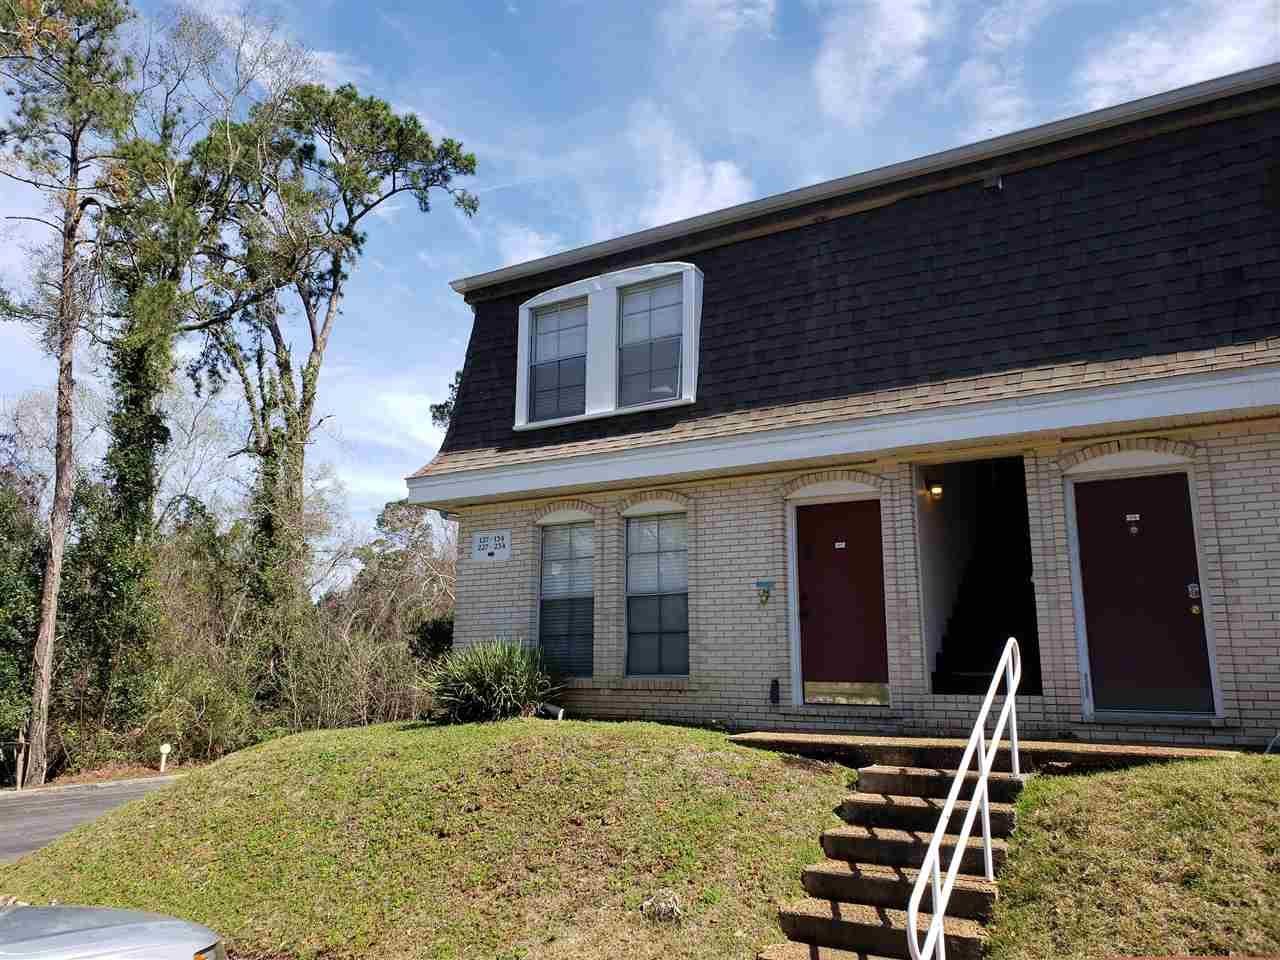 Photo for 2020 Continental Avenue #127, TALLAHASSEE, FL 32304 (MLS # 315870)